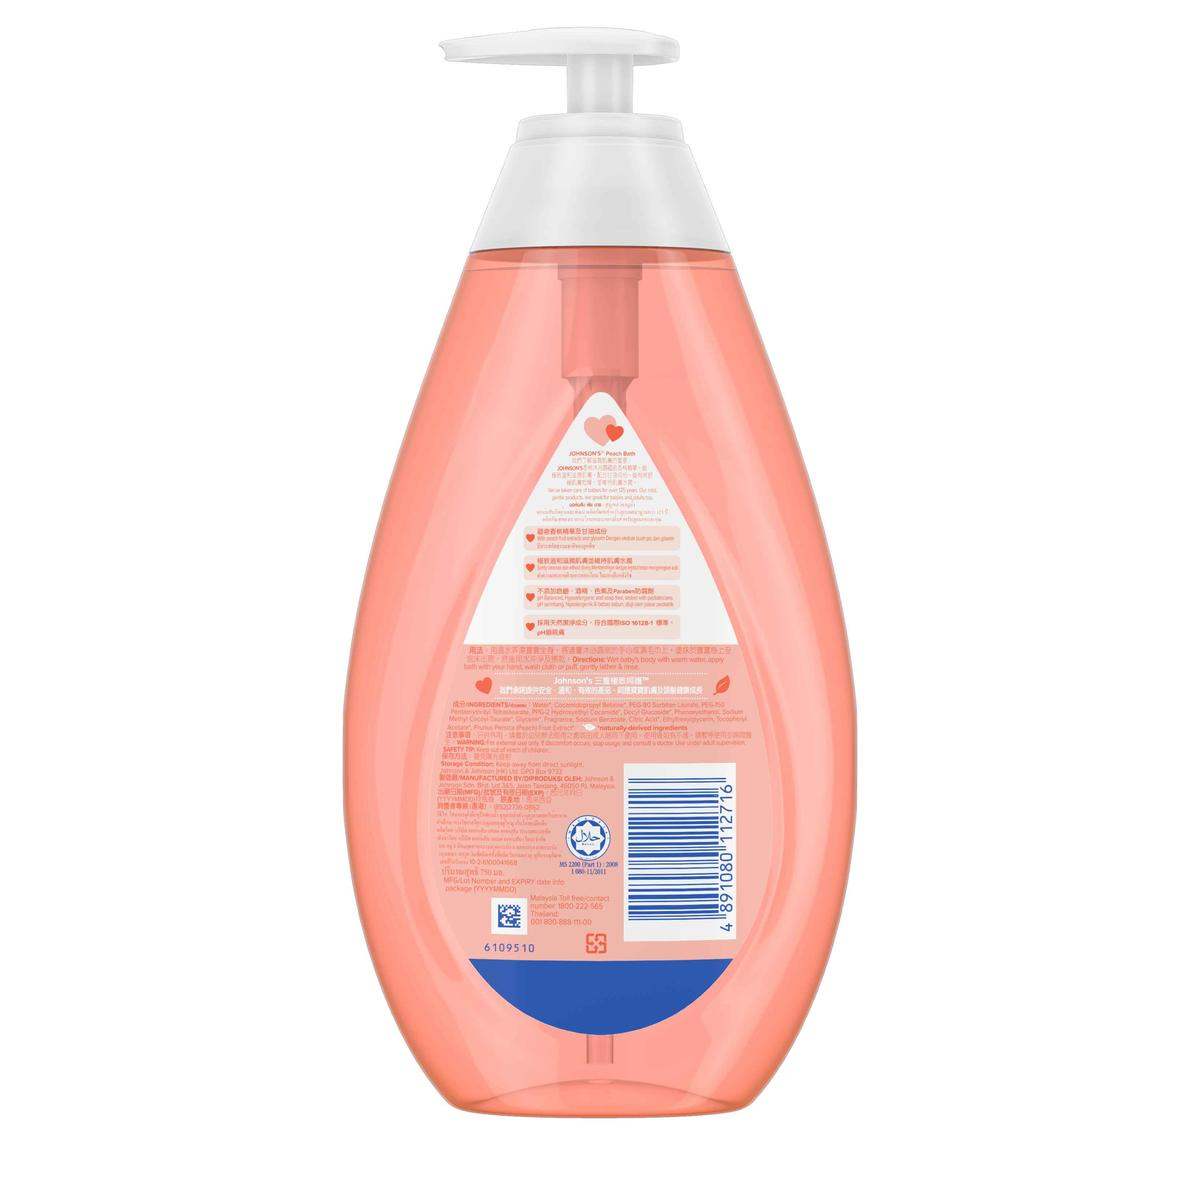 peach-bath-750ml-back.jpg